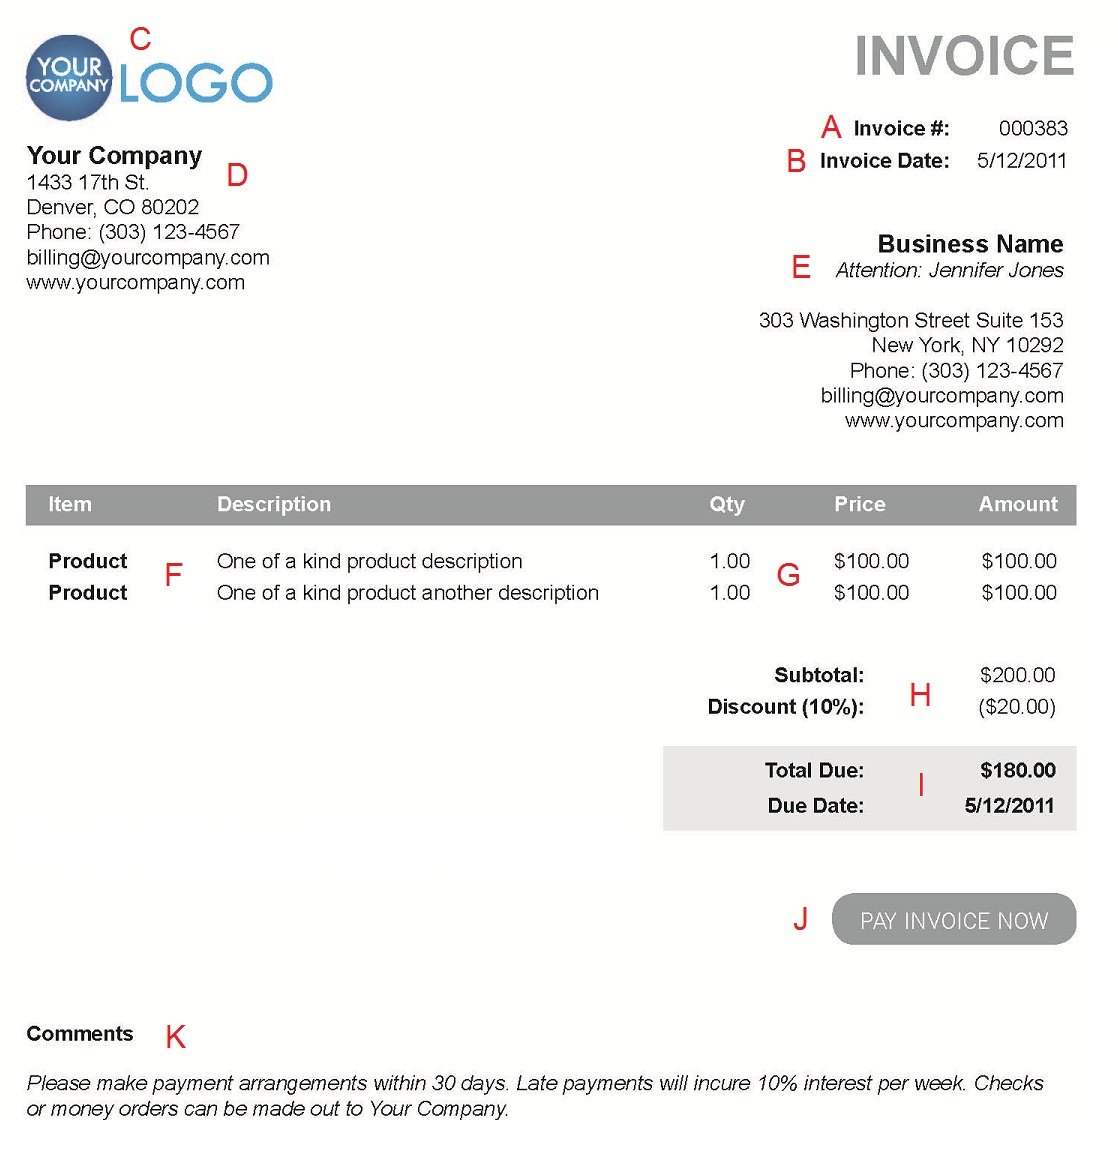 Coolmathgamesus  Outstanding The  Different Sections Of An Electronic Payment Invoice With Marvelous A  With Breathtaking Invoice Insurance Also Actual Invoice Price New Cars In Addition Quicken Invoice Software And Paying An Invoice As Well As Invoice Factoring Software Additionally Audi Q Invoice Price From Paysimplecom With Coolmathgamesus  Marvelous The  Different Sections Of An Electronic Payment Invoice With Breathtaking A  And Outstanding Invoice Insurance Also Actual Invoice Price New Cars In Addition Quicken Invoice Software From Paysimplecom